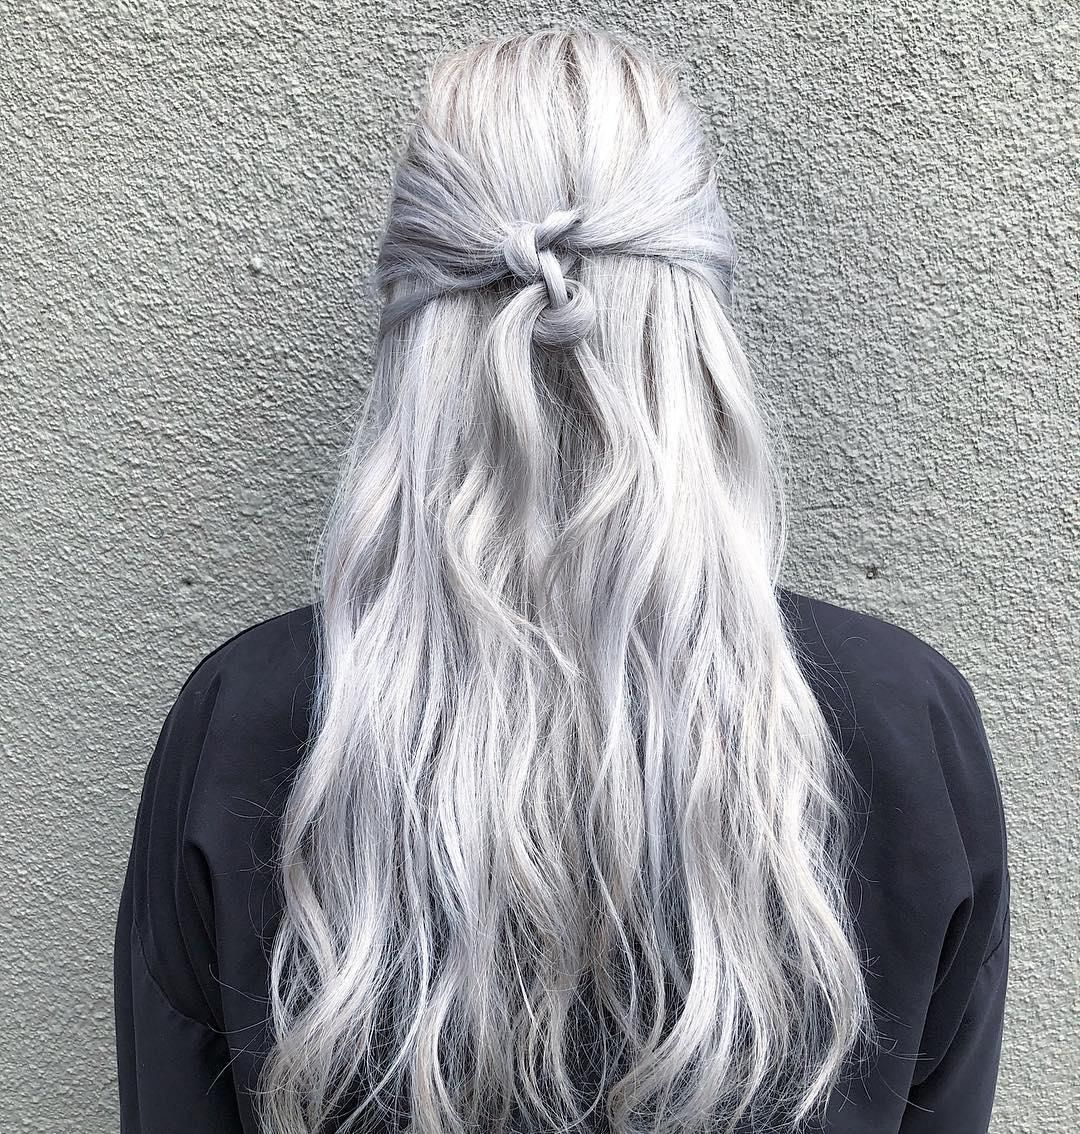 Icy Silver Platinum Blonde Aveda Hair Color By Aveda Artist Olivia